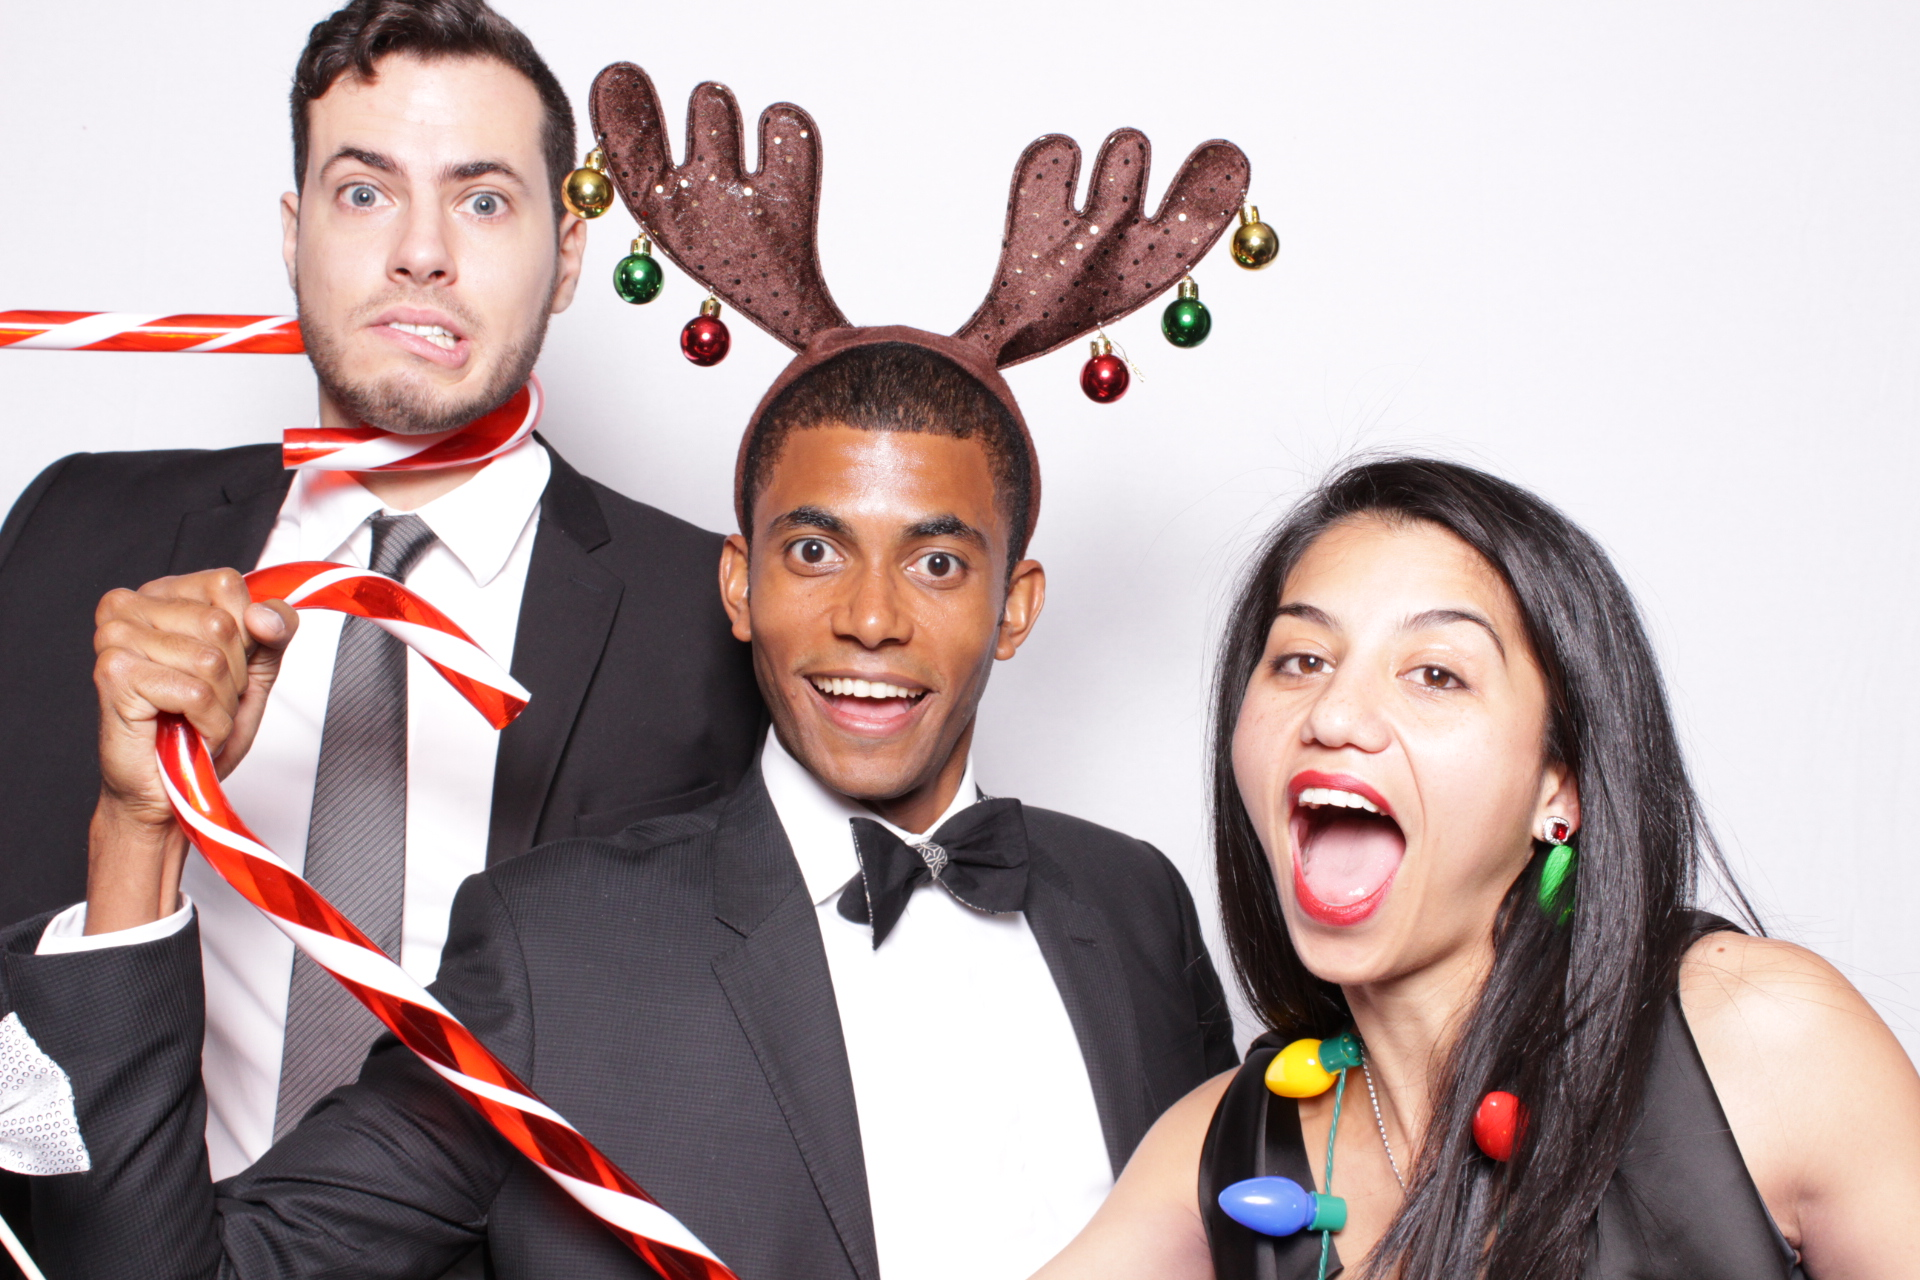 BOSTON CONSULTING GROUP | HOT PINK PHOTO BOOTH